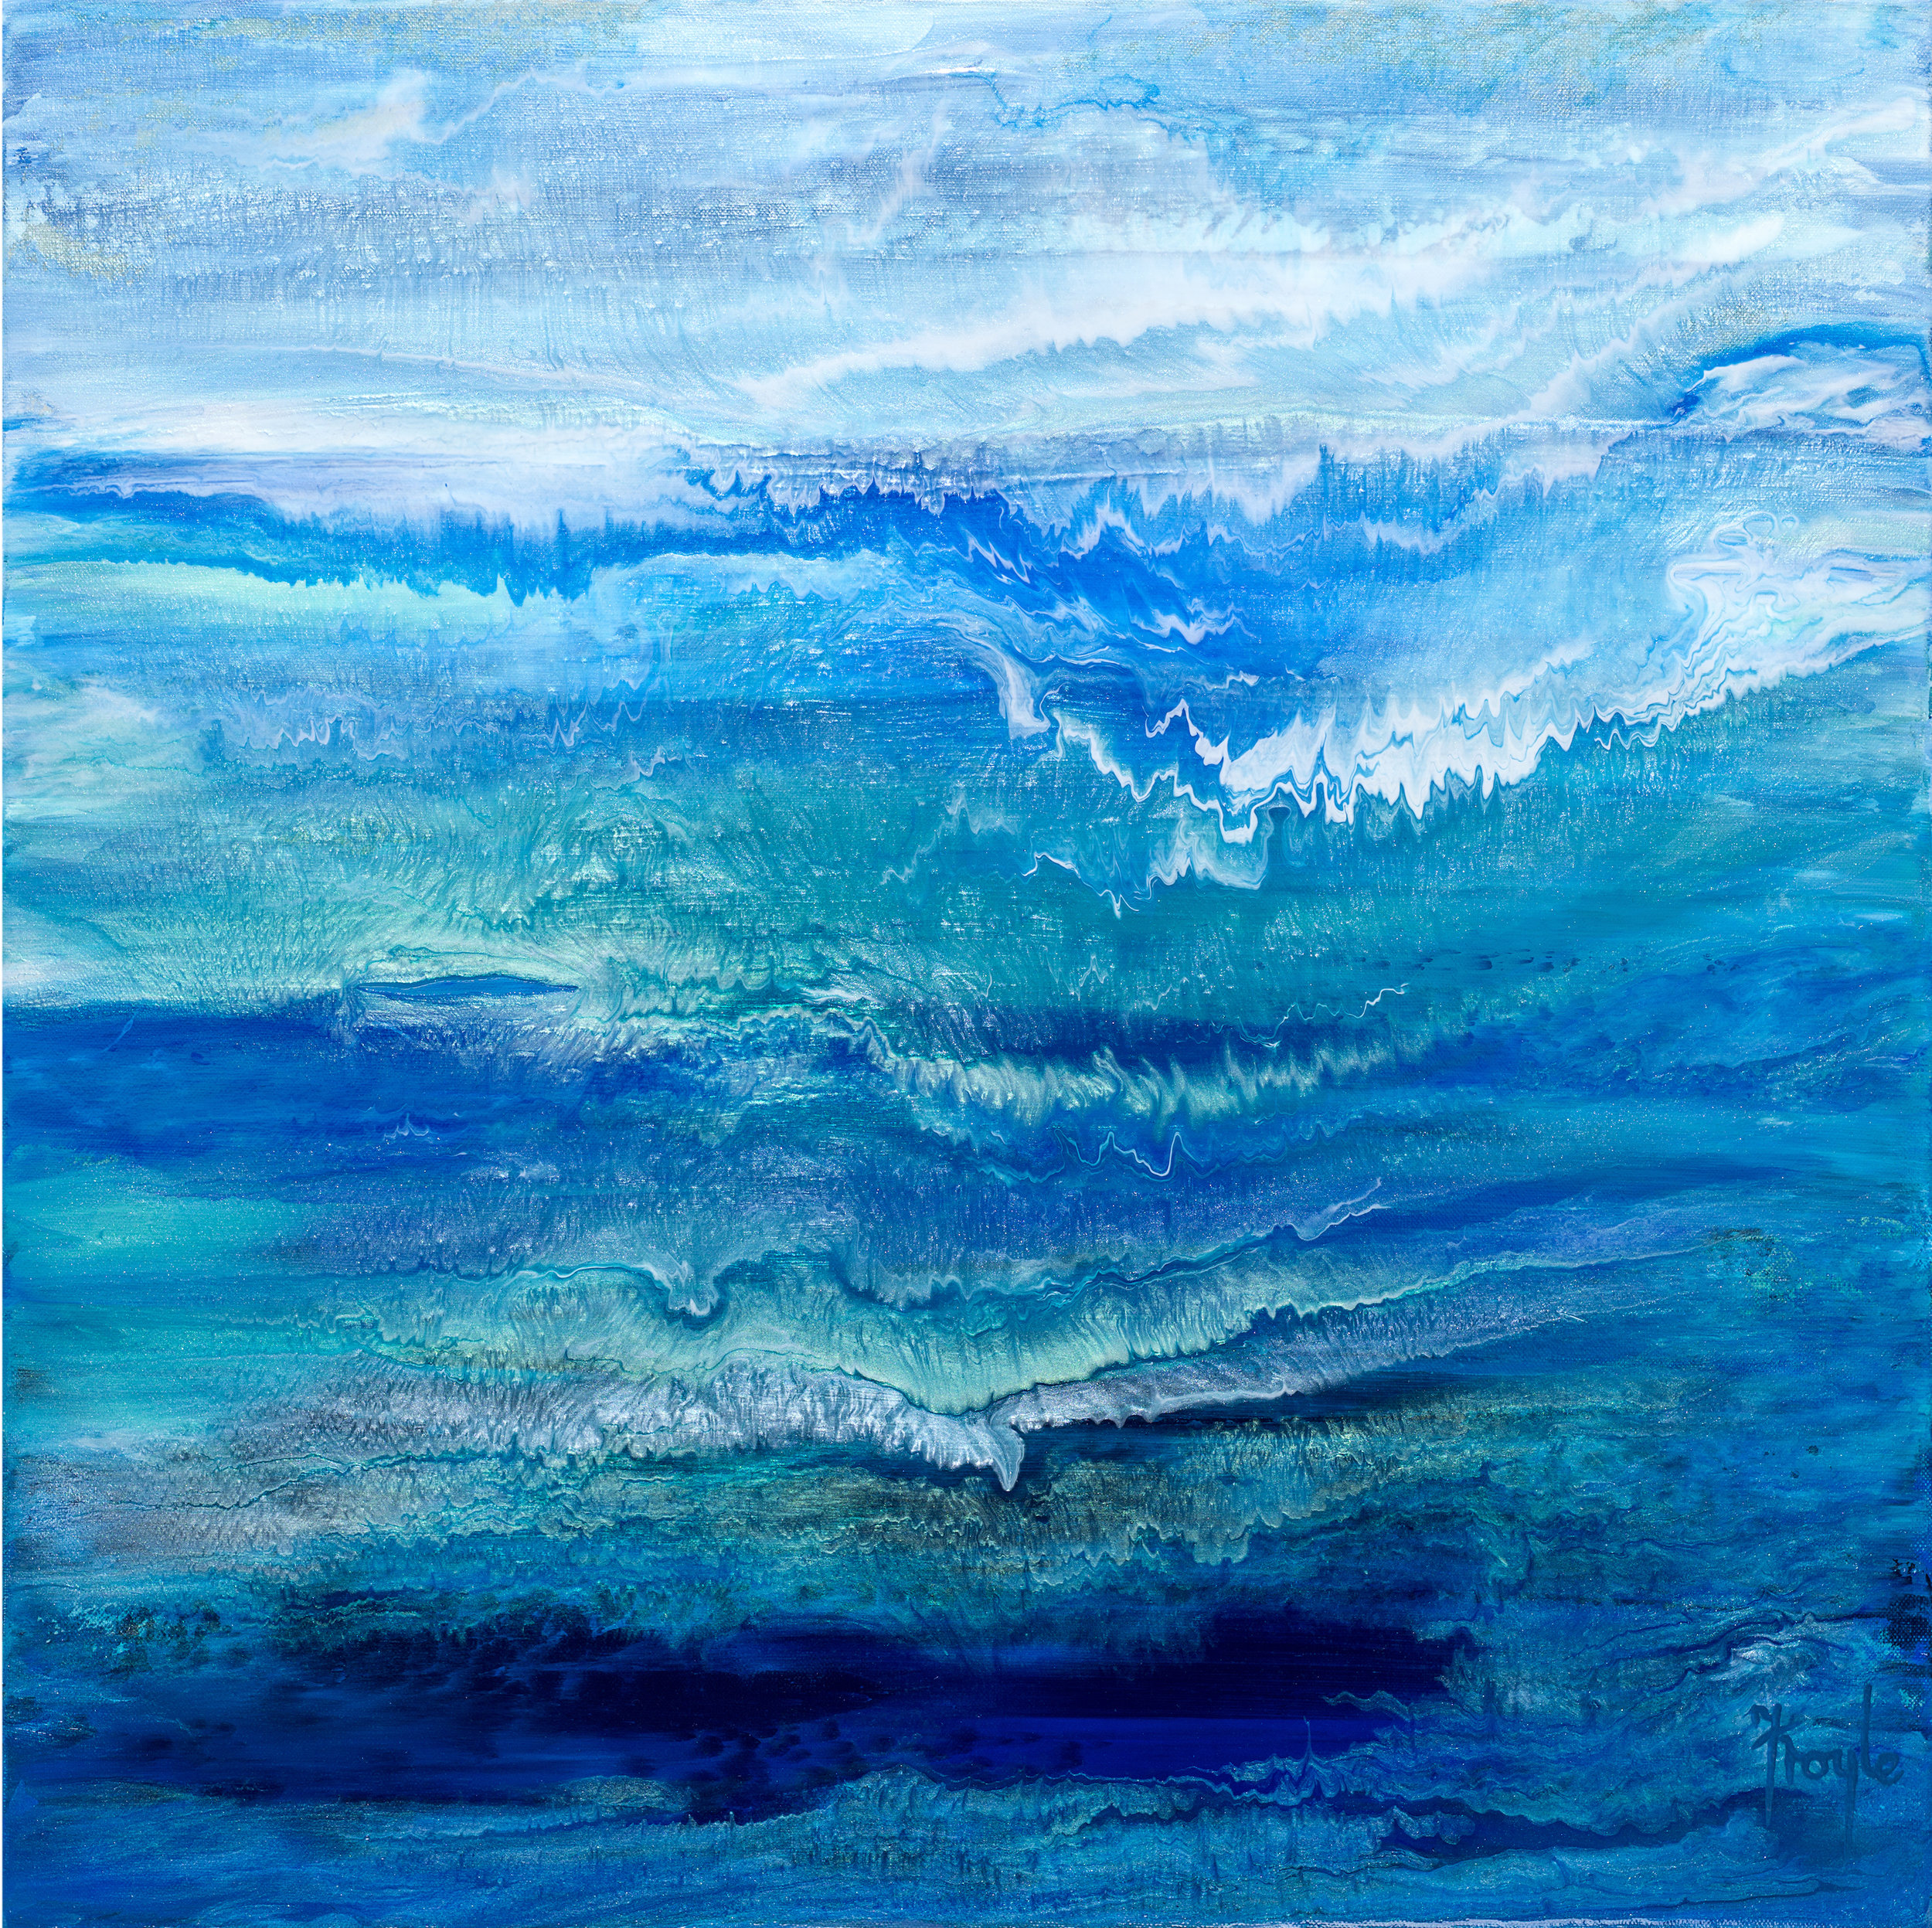 Where the Sea Meets the Sky  acrylic on linen, 61 x 61cm